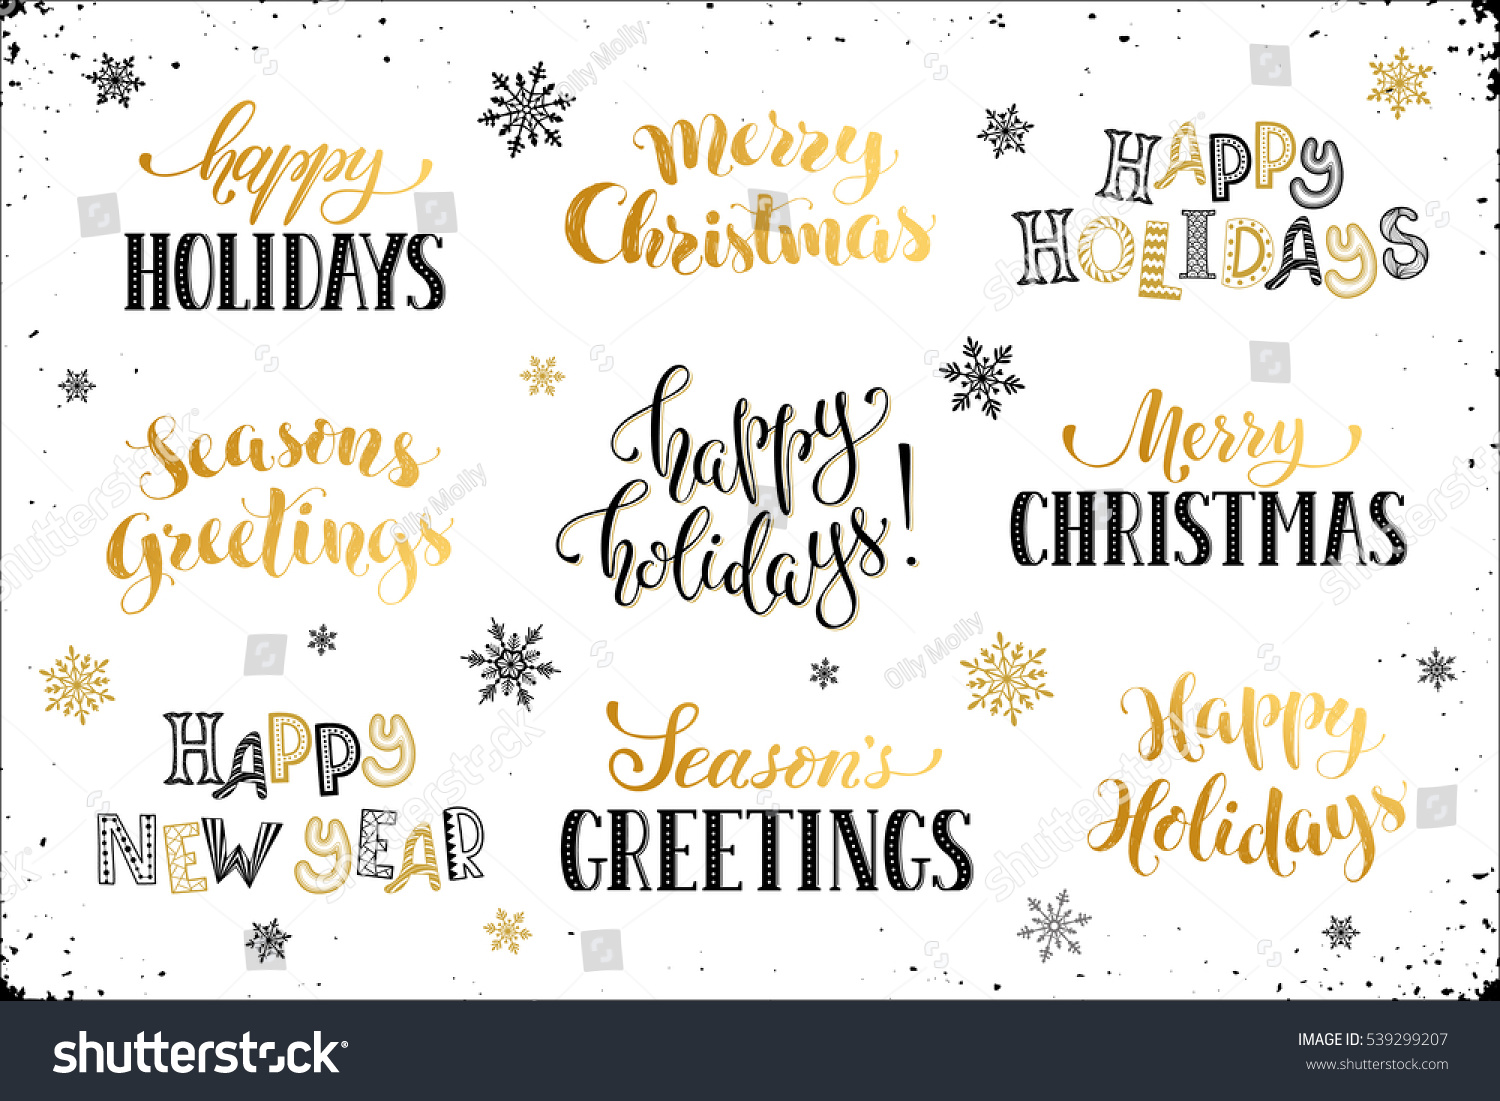 hand written new year phrases greeting card text with snowflakes isolated on white background